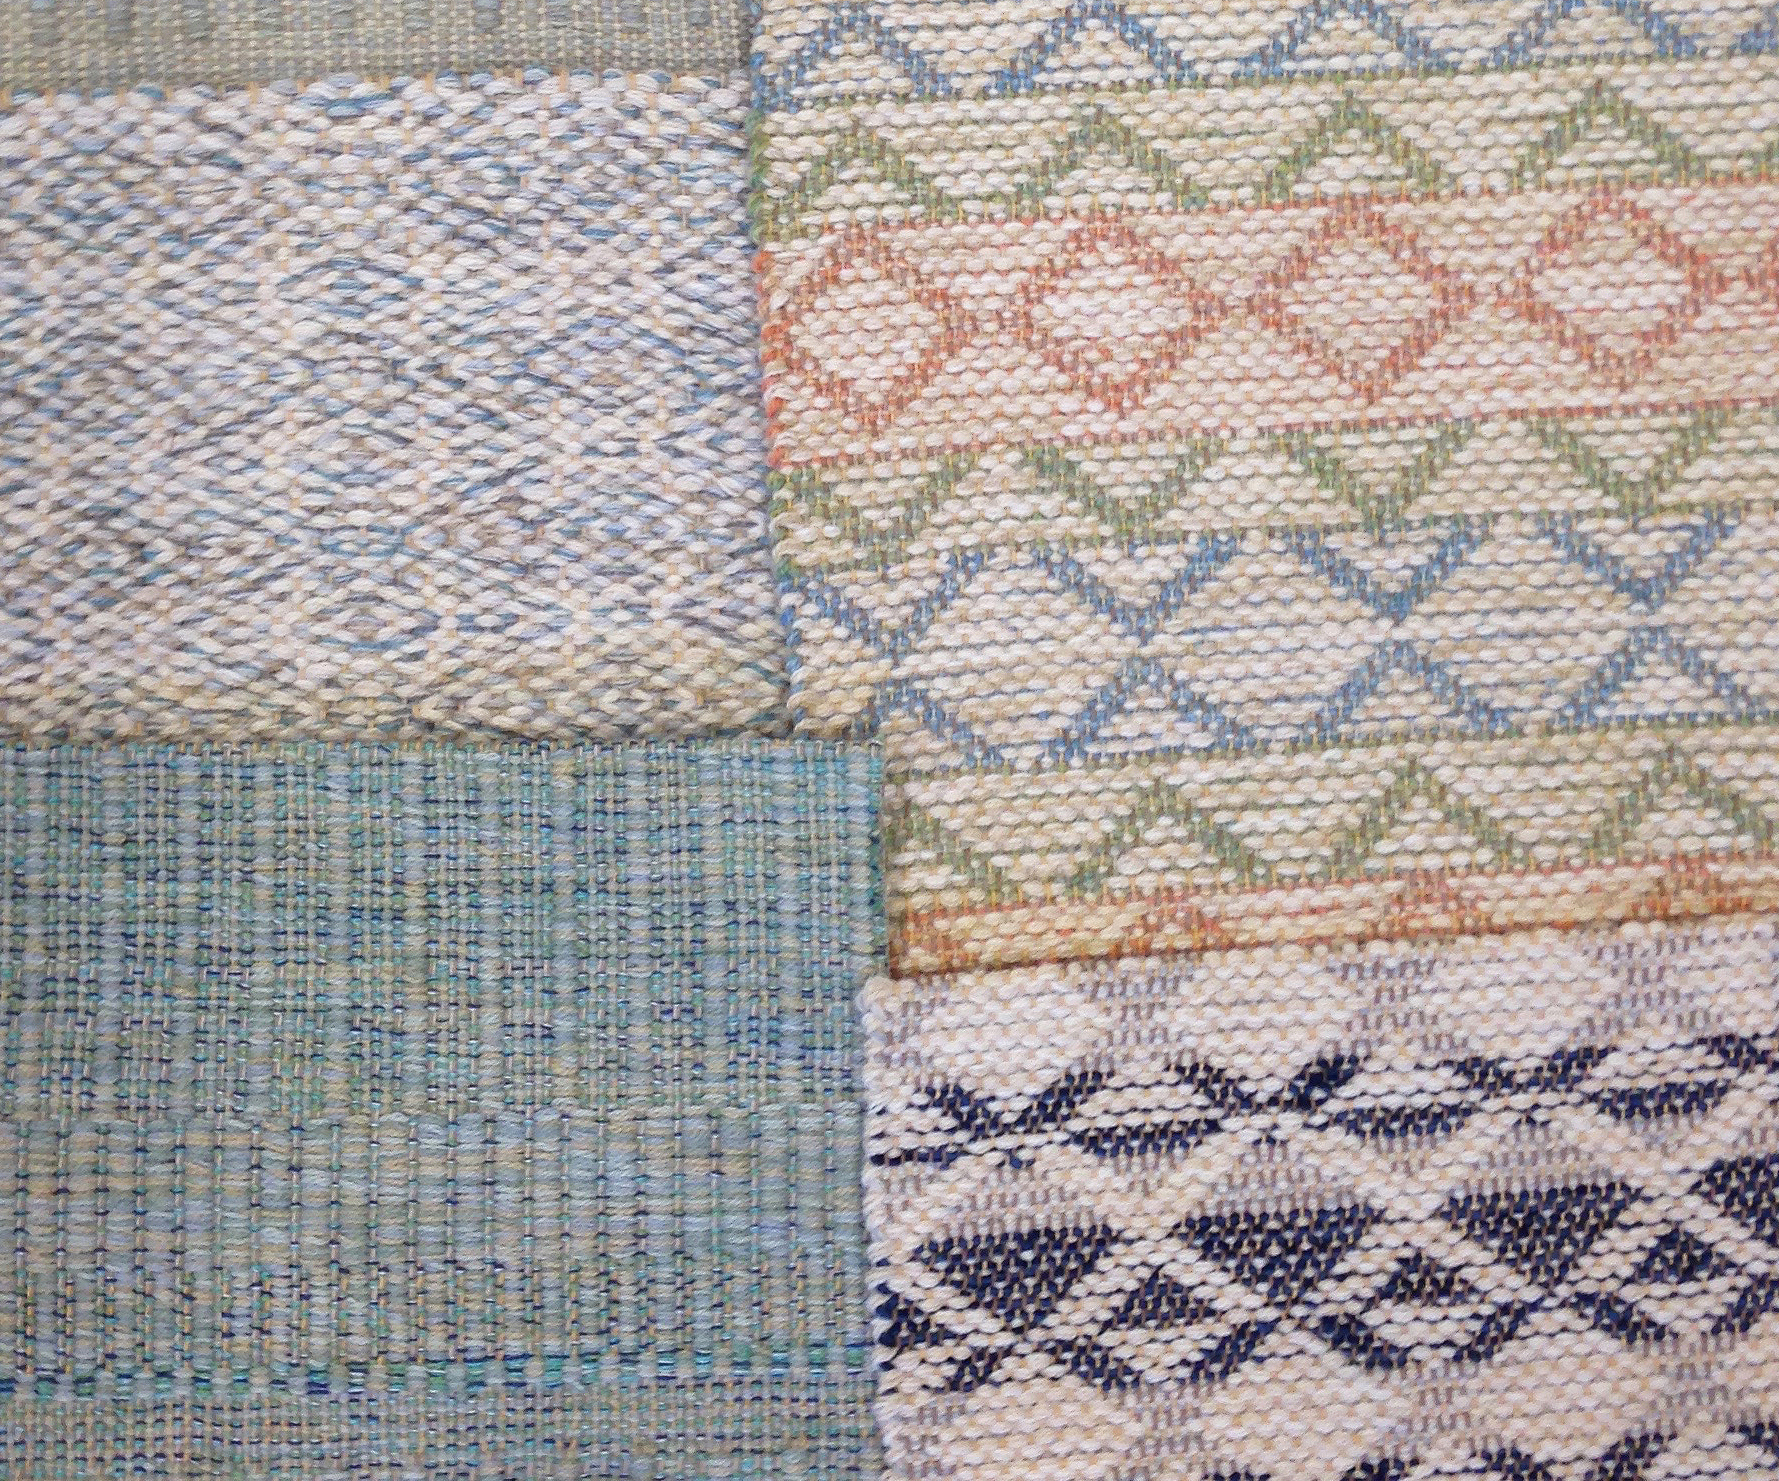 From top left clockwise; Tiger Eye Sky, Madison Triangle Pastel, Bases Navy, Twisp 5 Turquoise